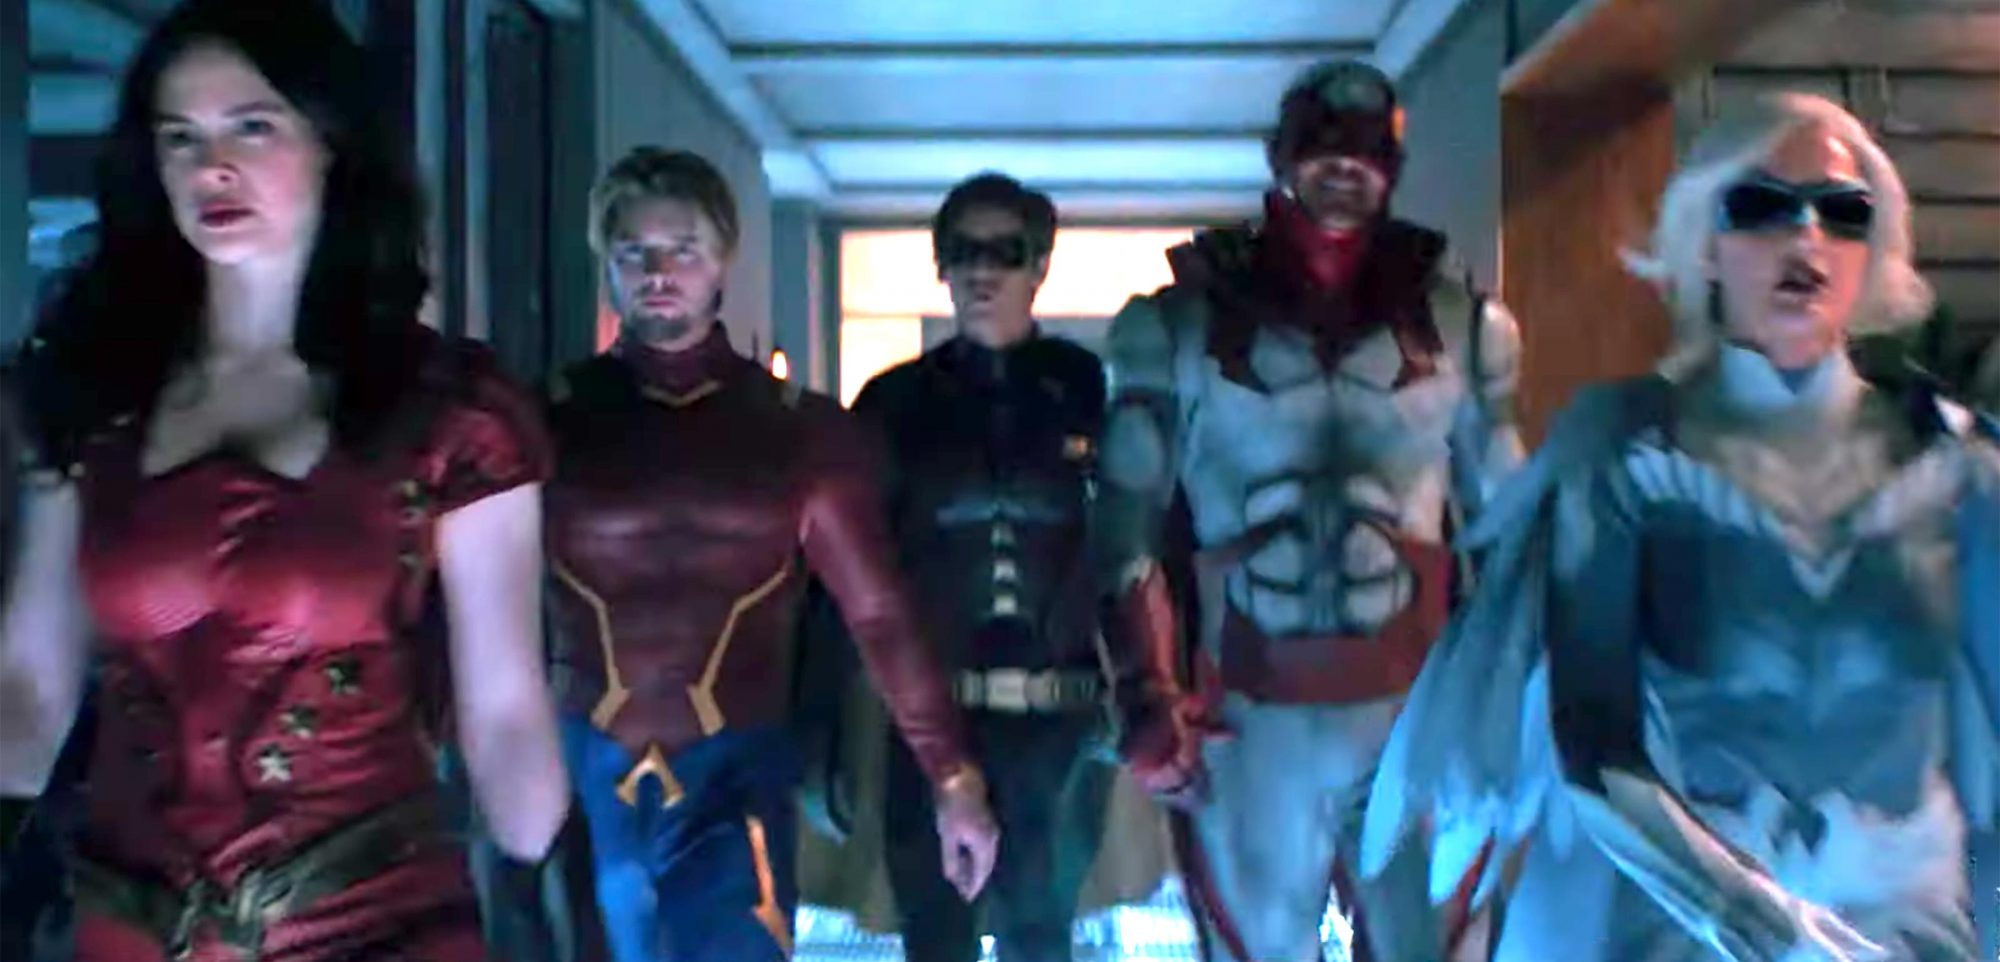 Titans | Recap & First Look | DC Universe | The Ultimate Membership (screen grab) https://www.youtube.com/watch?v=evBvLB_D6YA CR: DC Universe